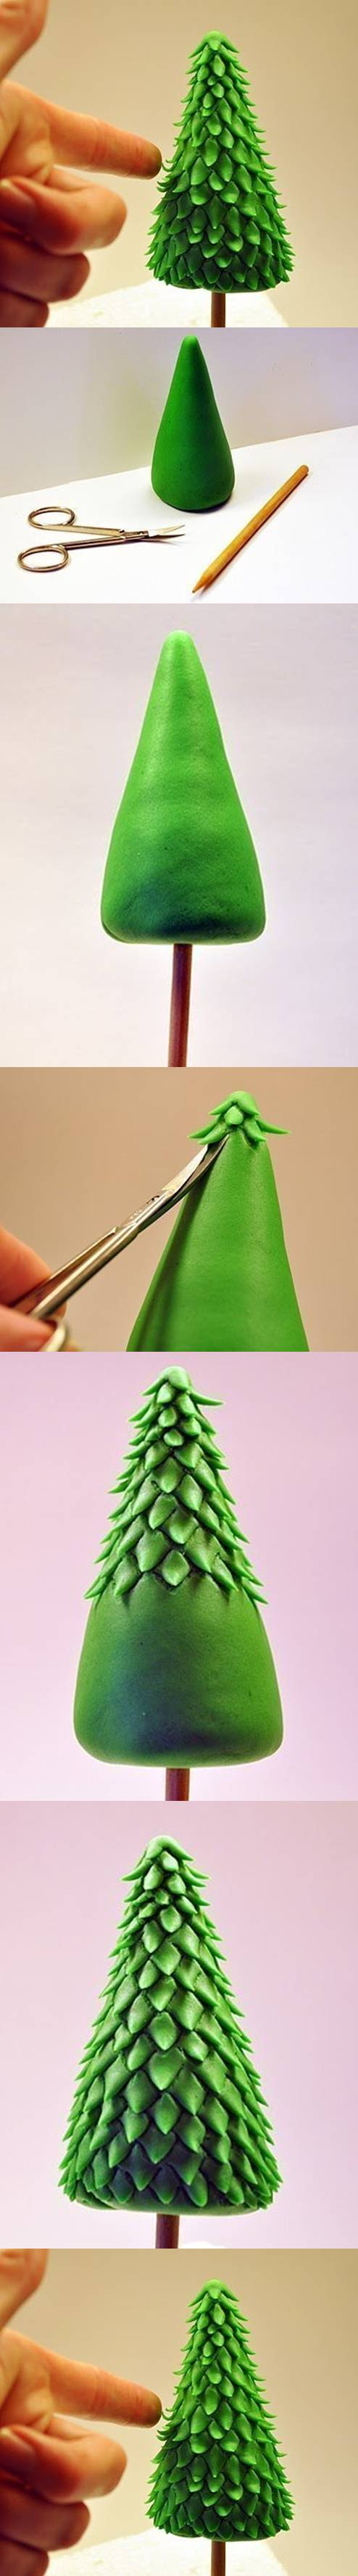 How to make Clay Christmas Tree step by step DIY tutorial instructions How to make Clay Christmas Tree step by step DIY tutorial instructions